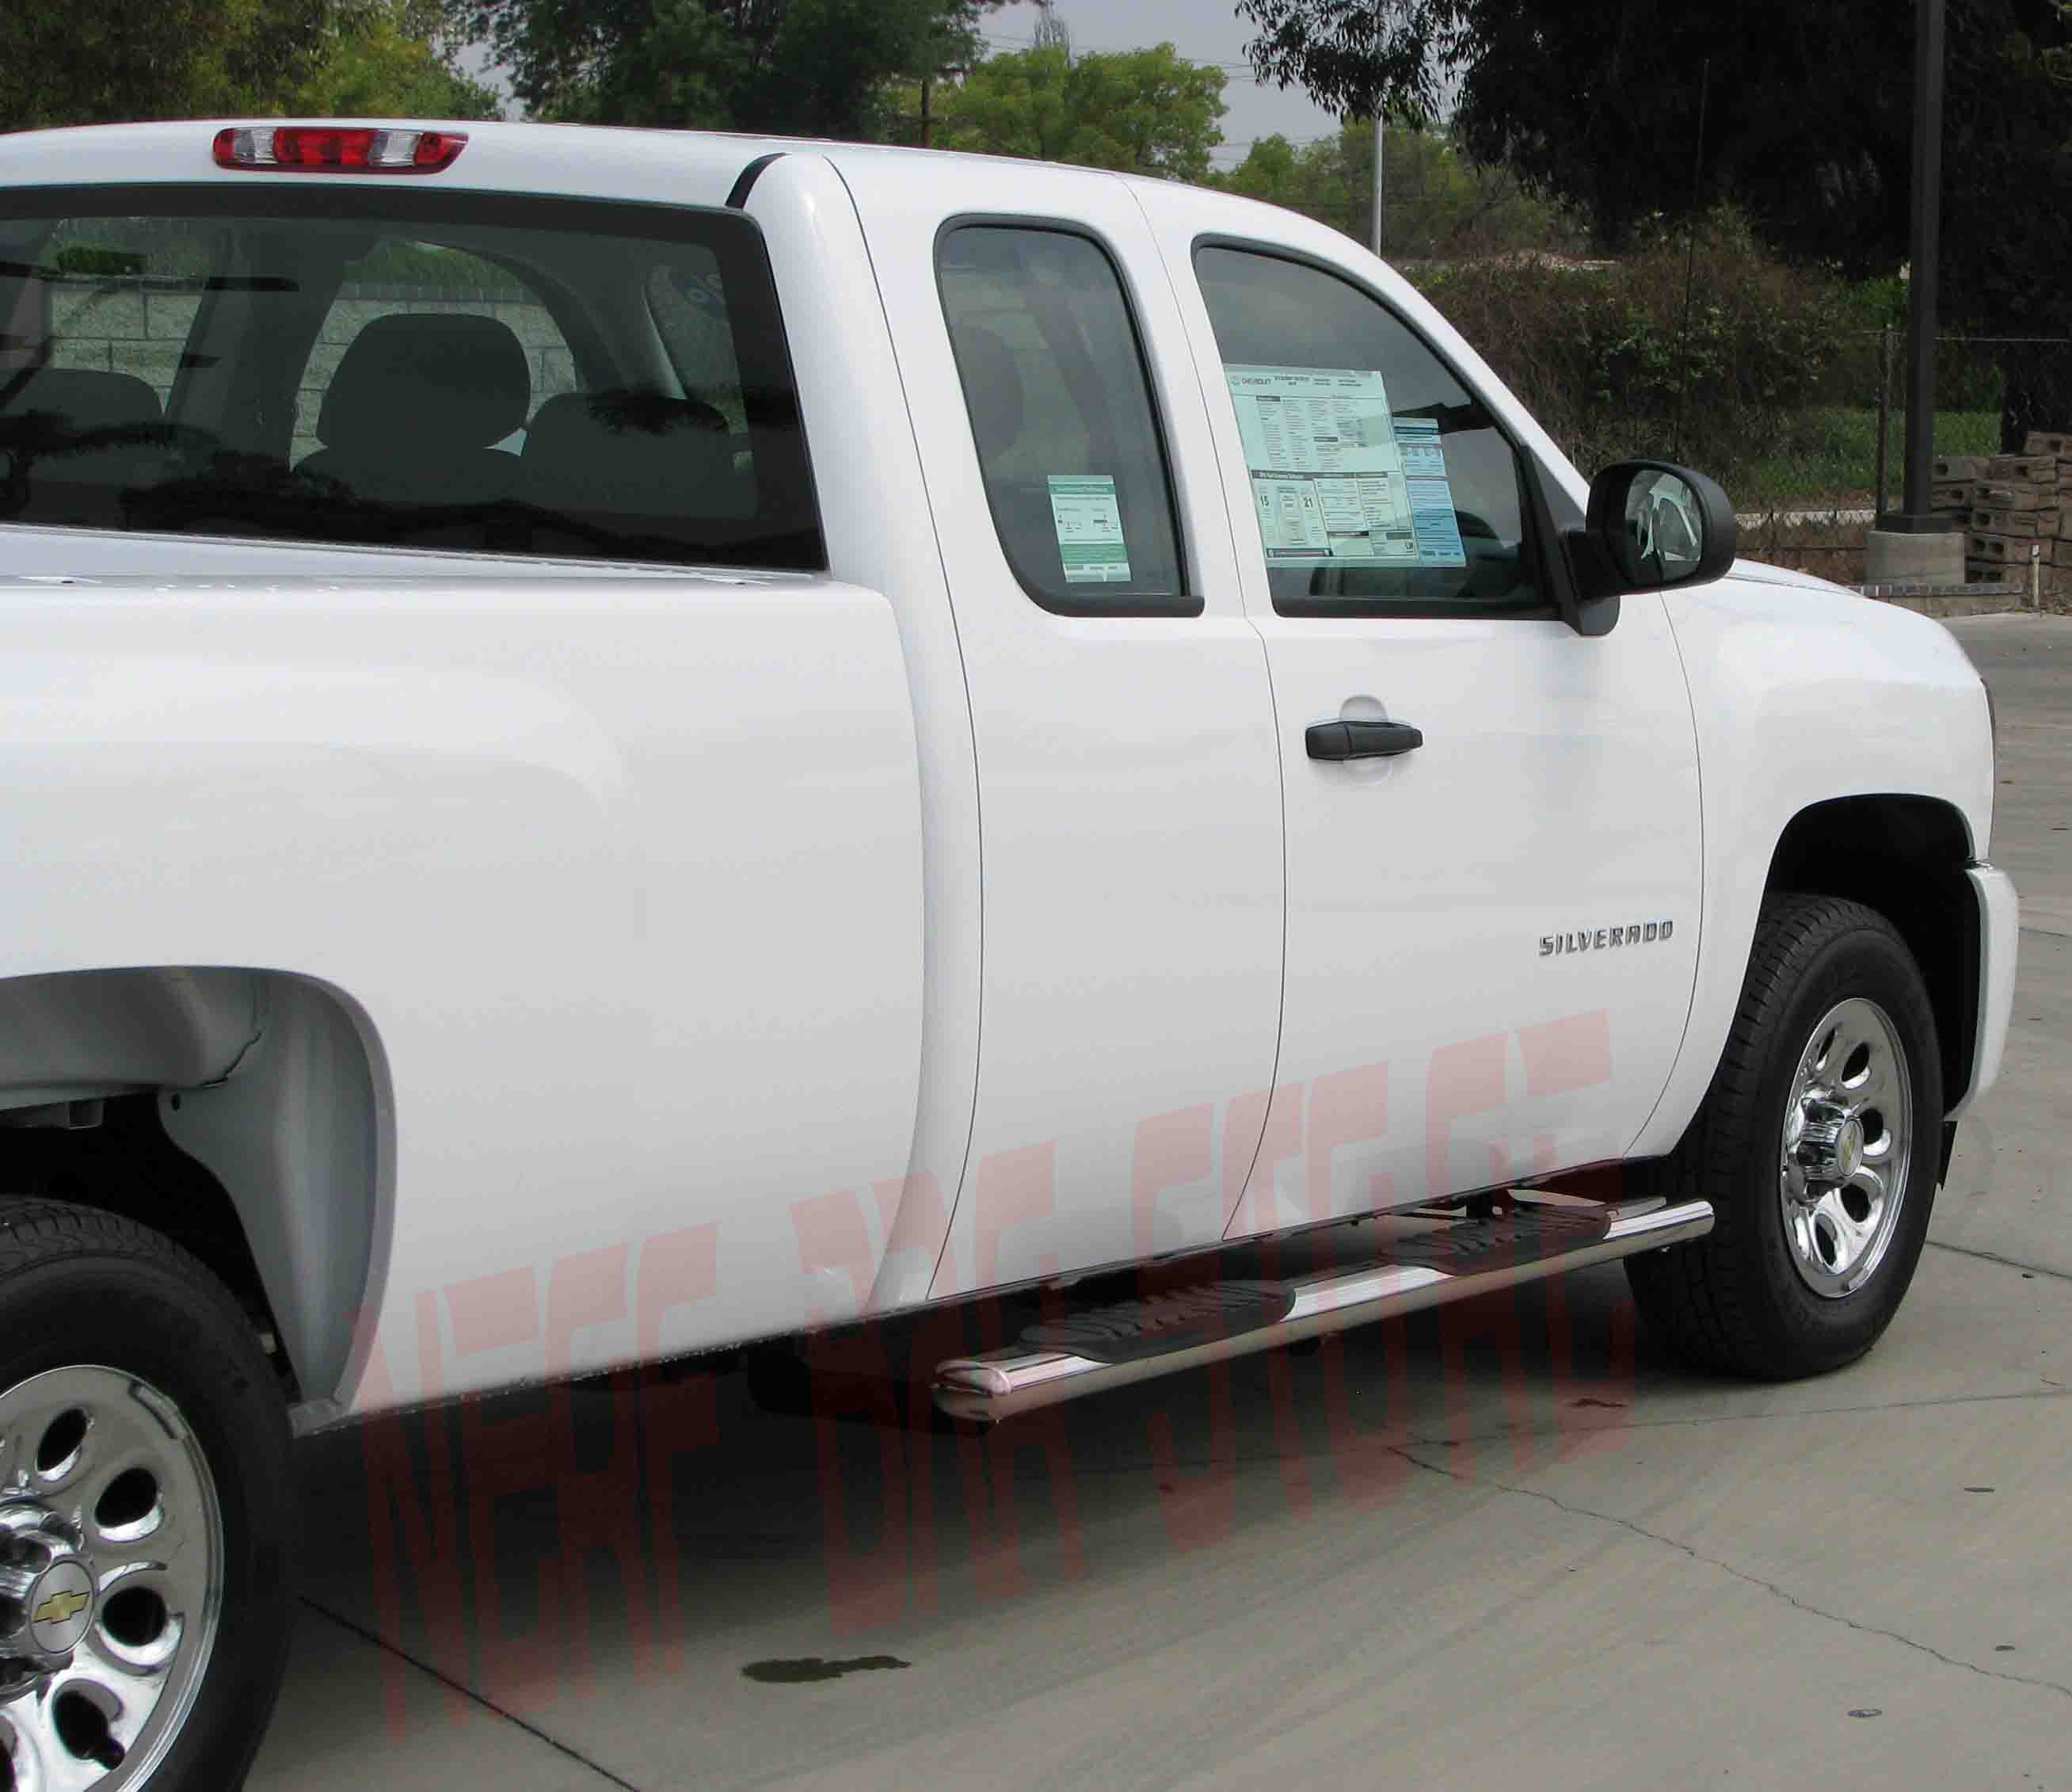 2012 Silverado 1500 4 Inch OVAL Extended Cab Nerf Bars